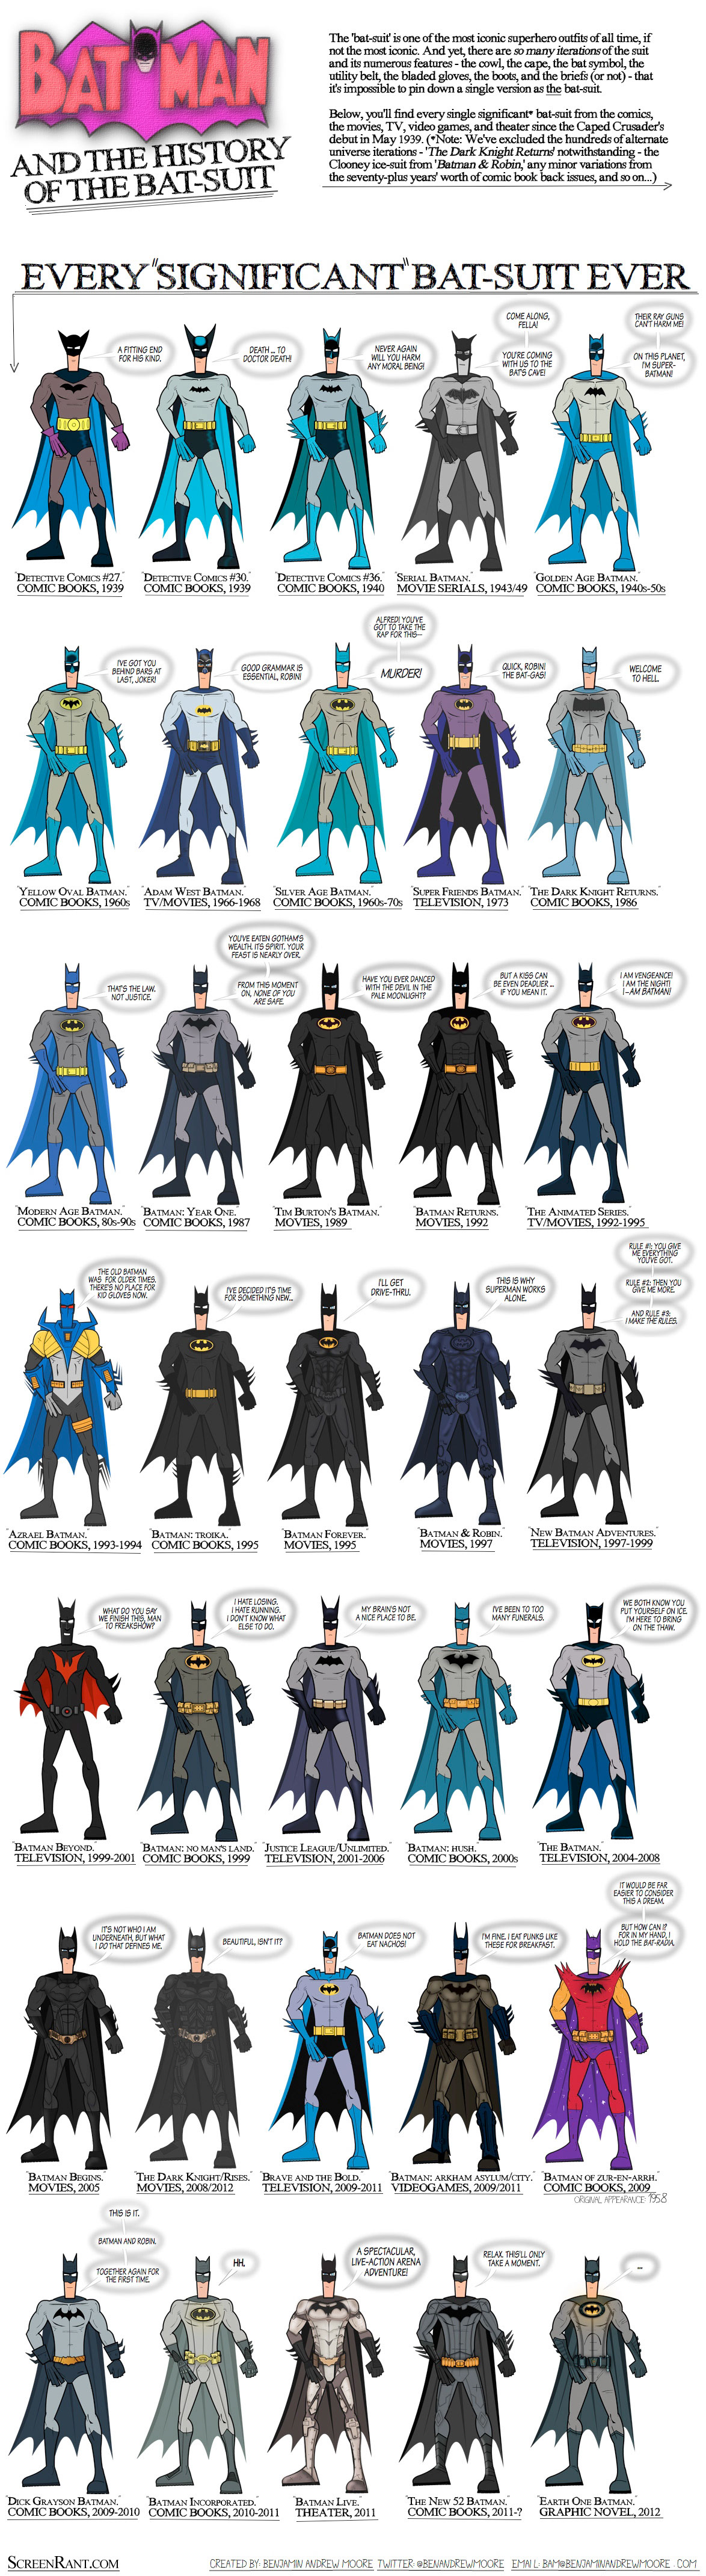 Batman-The-History-Of-The-Bar-Suit-infographic